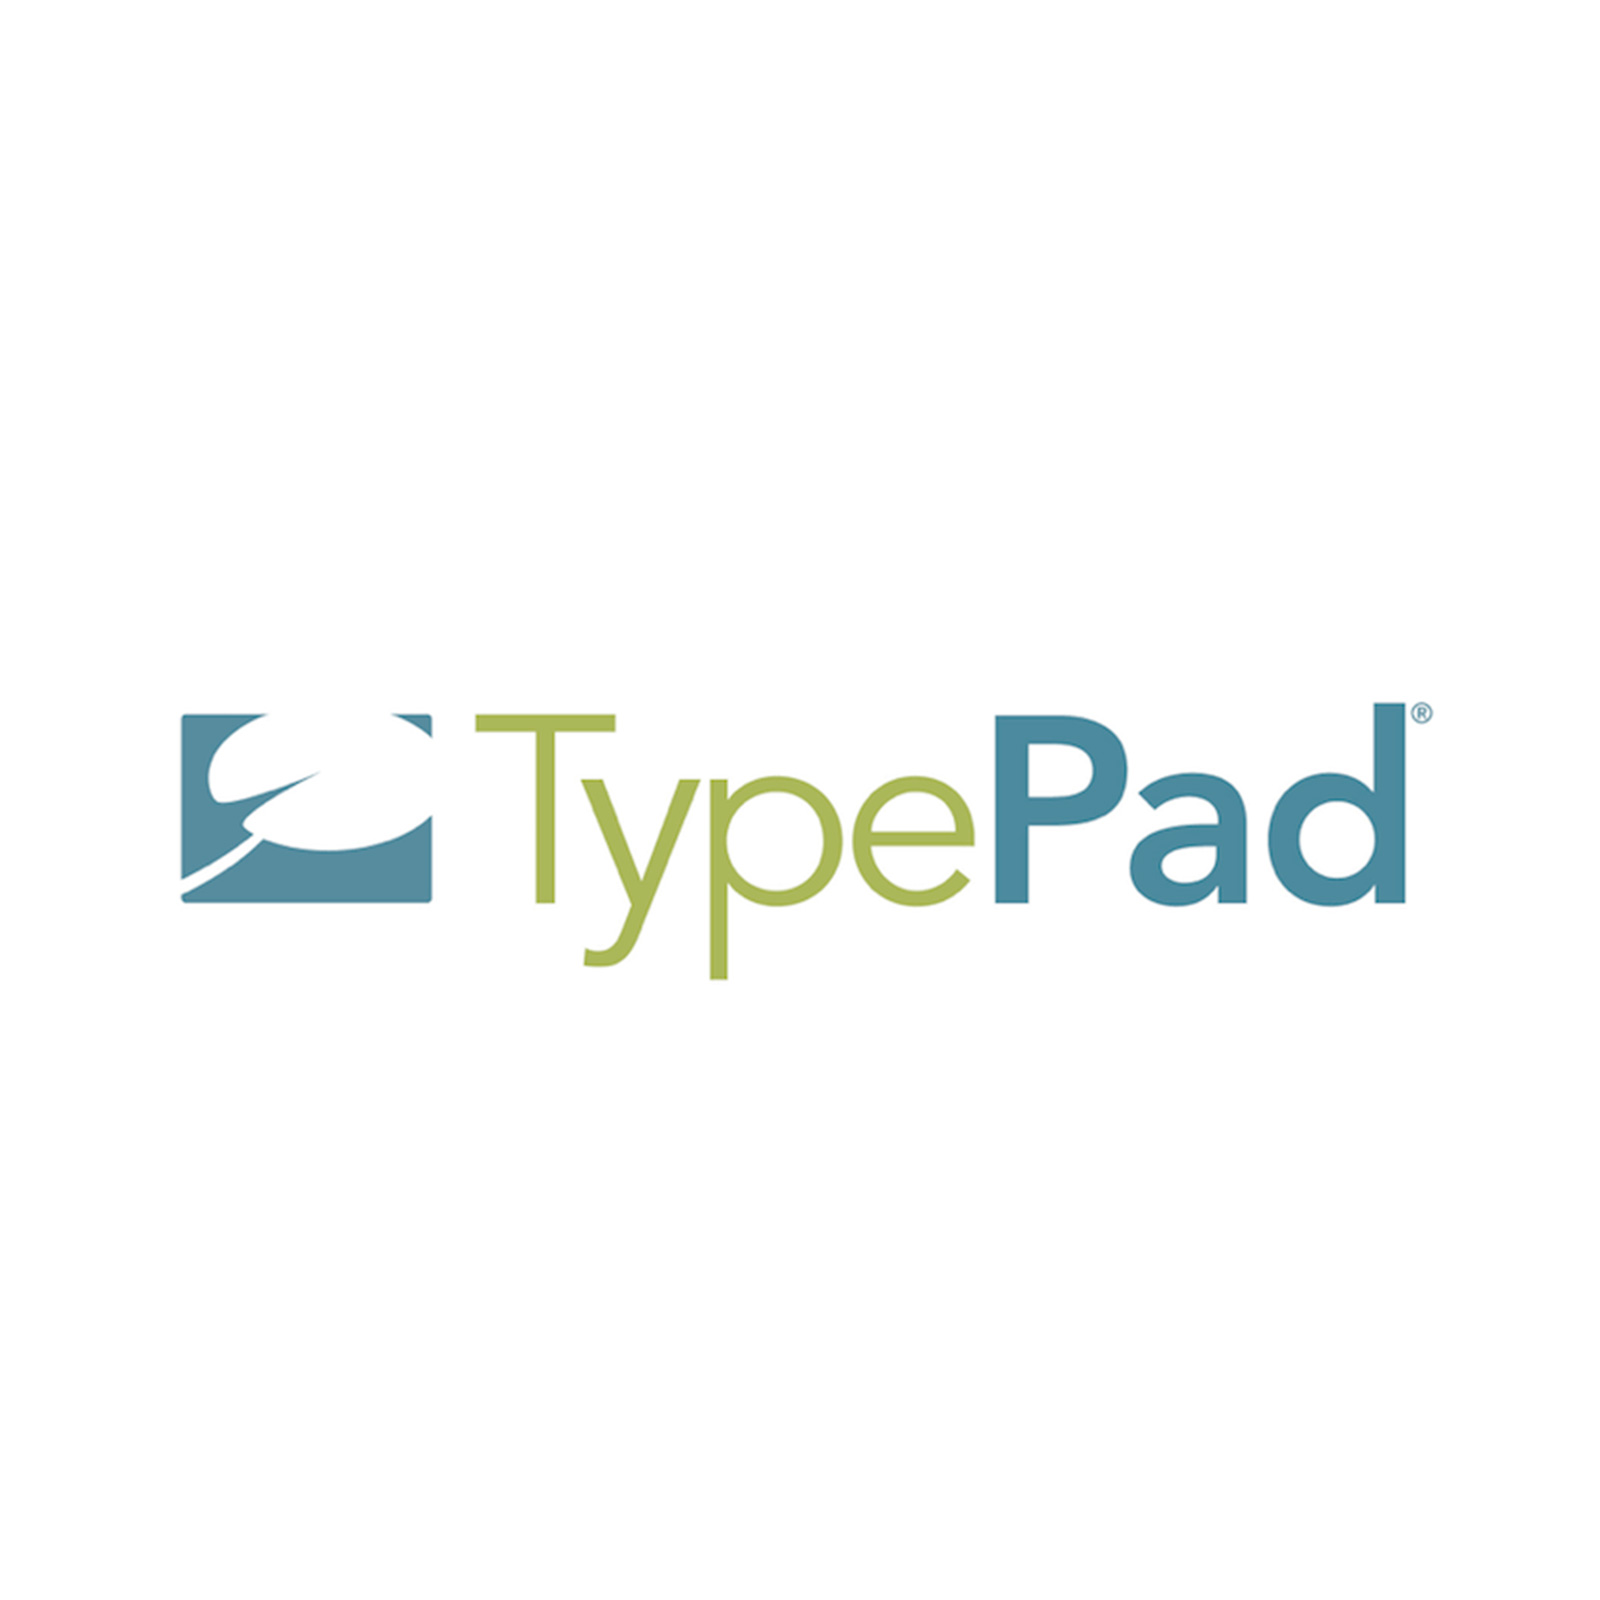 TypePad is a blogging service owned by Endurance International Group, previously owned by SAY Media.